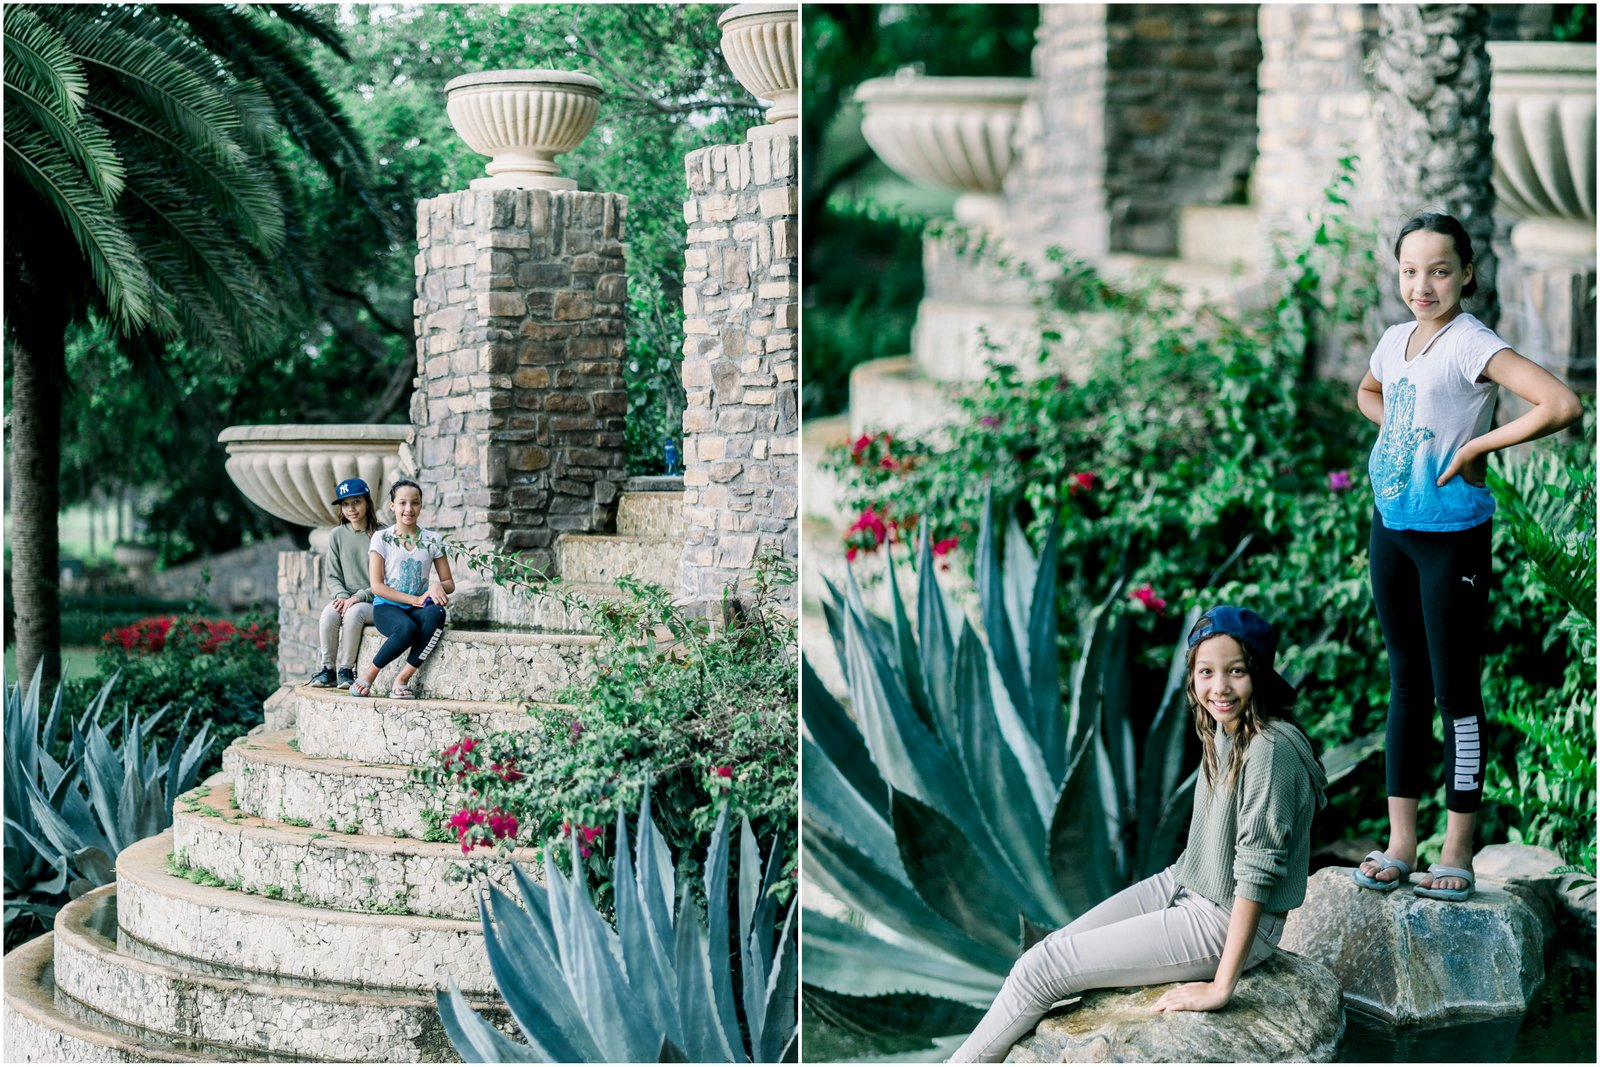 My little family – My assistants came with me to shoot Neena's engagement session, Miami Wedding Photographers | Häring Photography, Indian Wedding Photographer in Florida, Best Muslim, Hindu - South East Asian Wedding Photographers